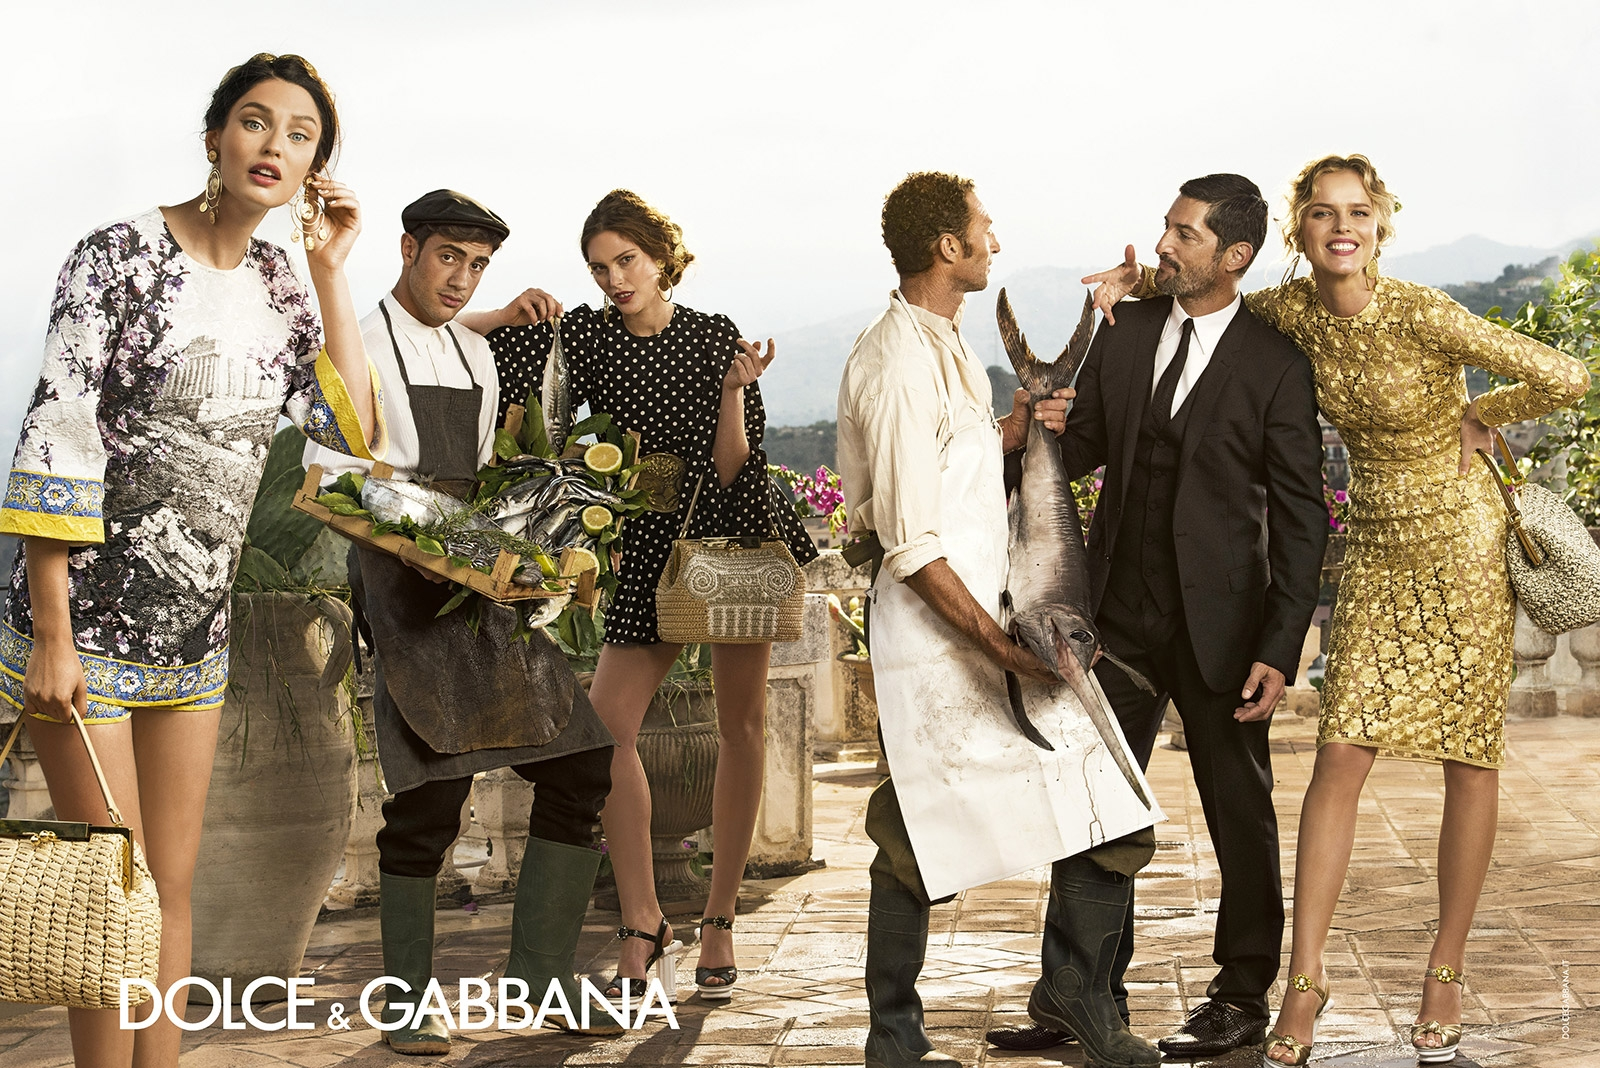 dolce and gabbana advertising campaign ss14 2014, valencia fashion blogger something fashion, womens italy fashion dG